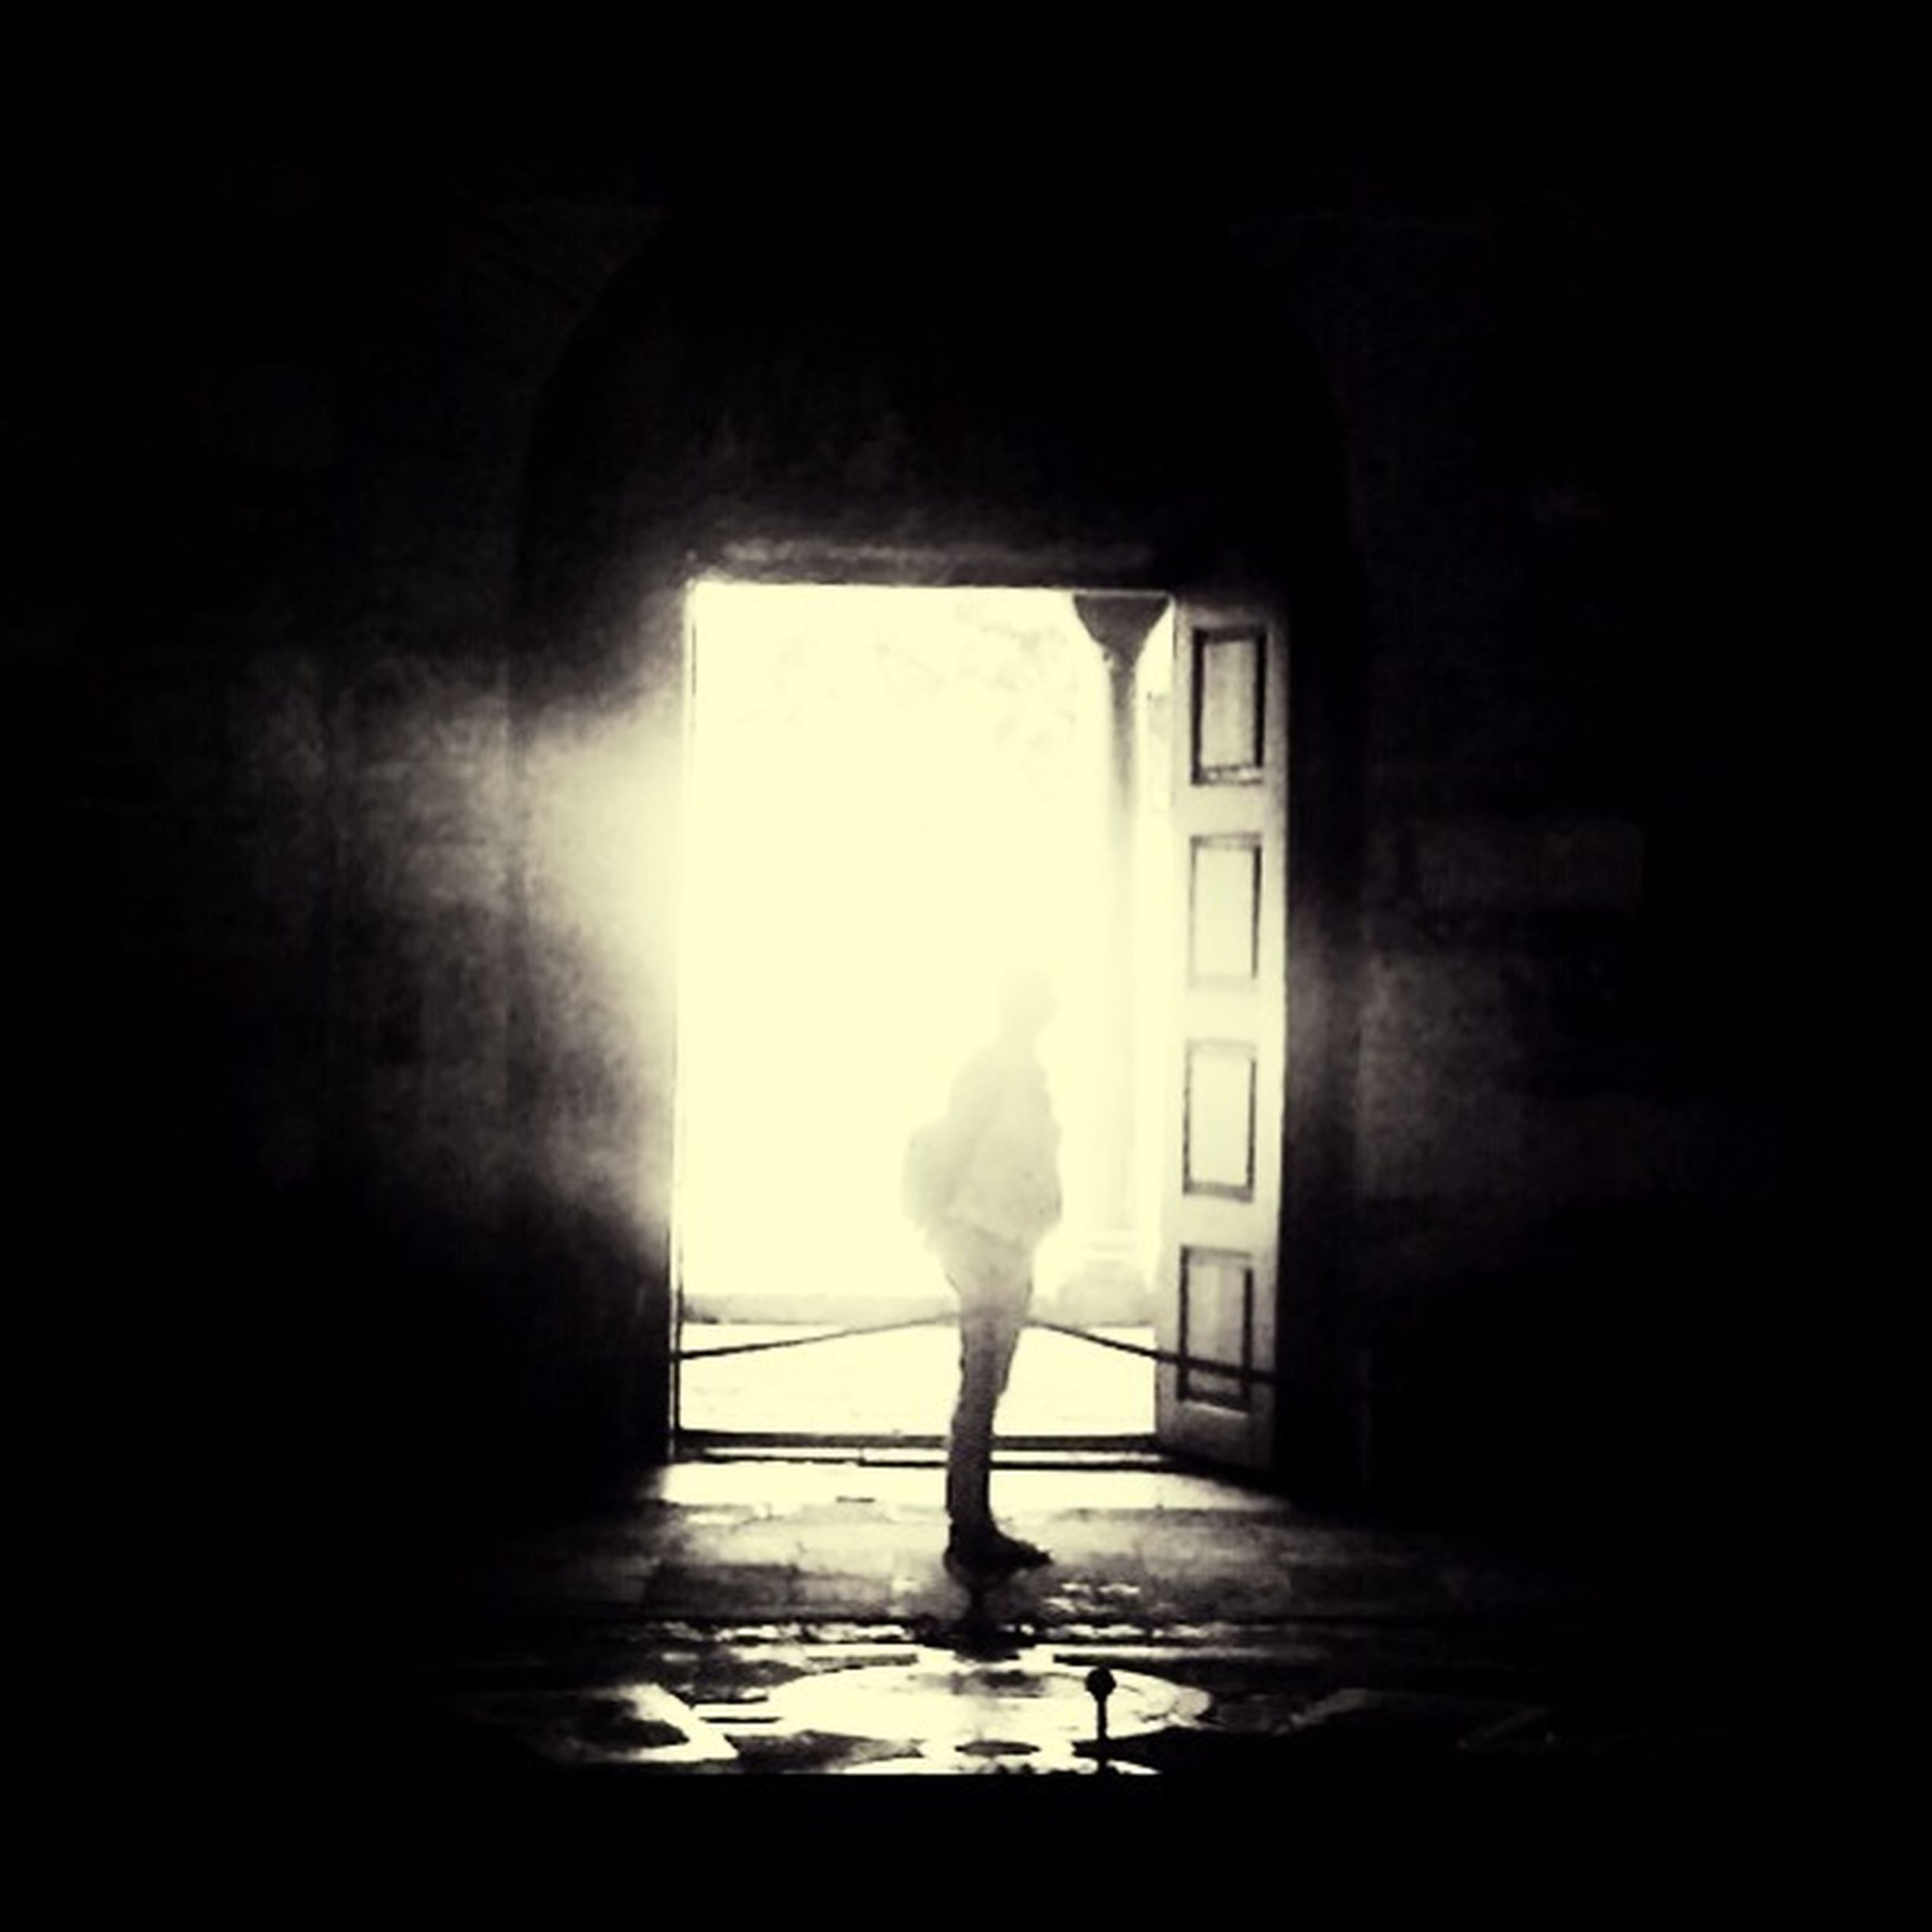 indoors, full length, standing, lifestyles, rear view, window, silhouette, sunlight, walking, person, door, architecture, arch, built structure, wall - building feature, dark, leisure activity, day